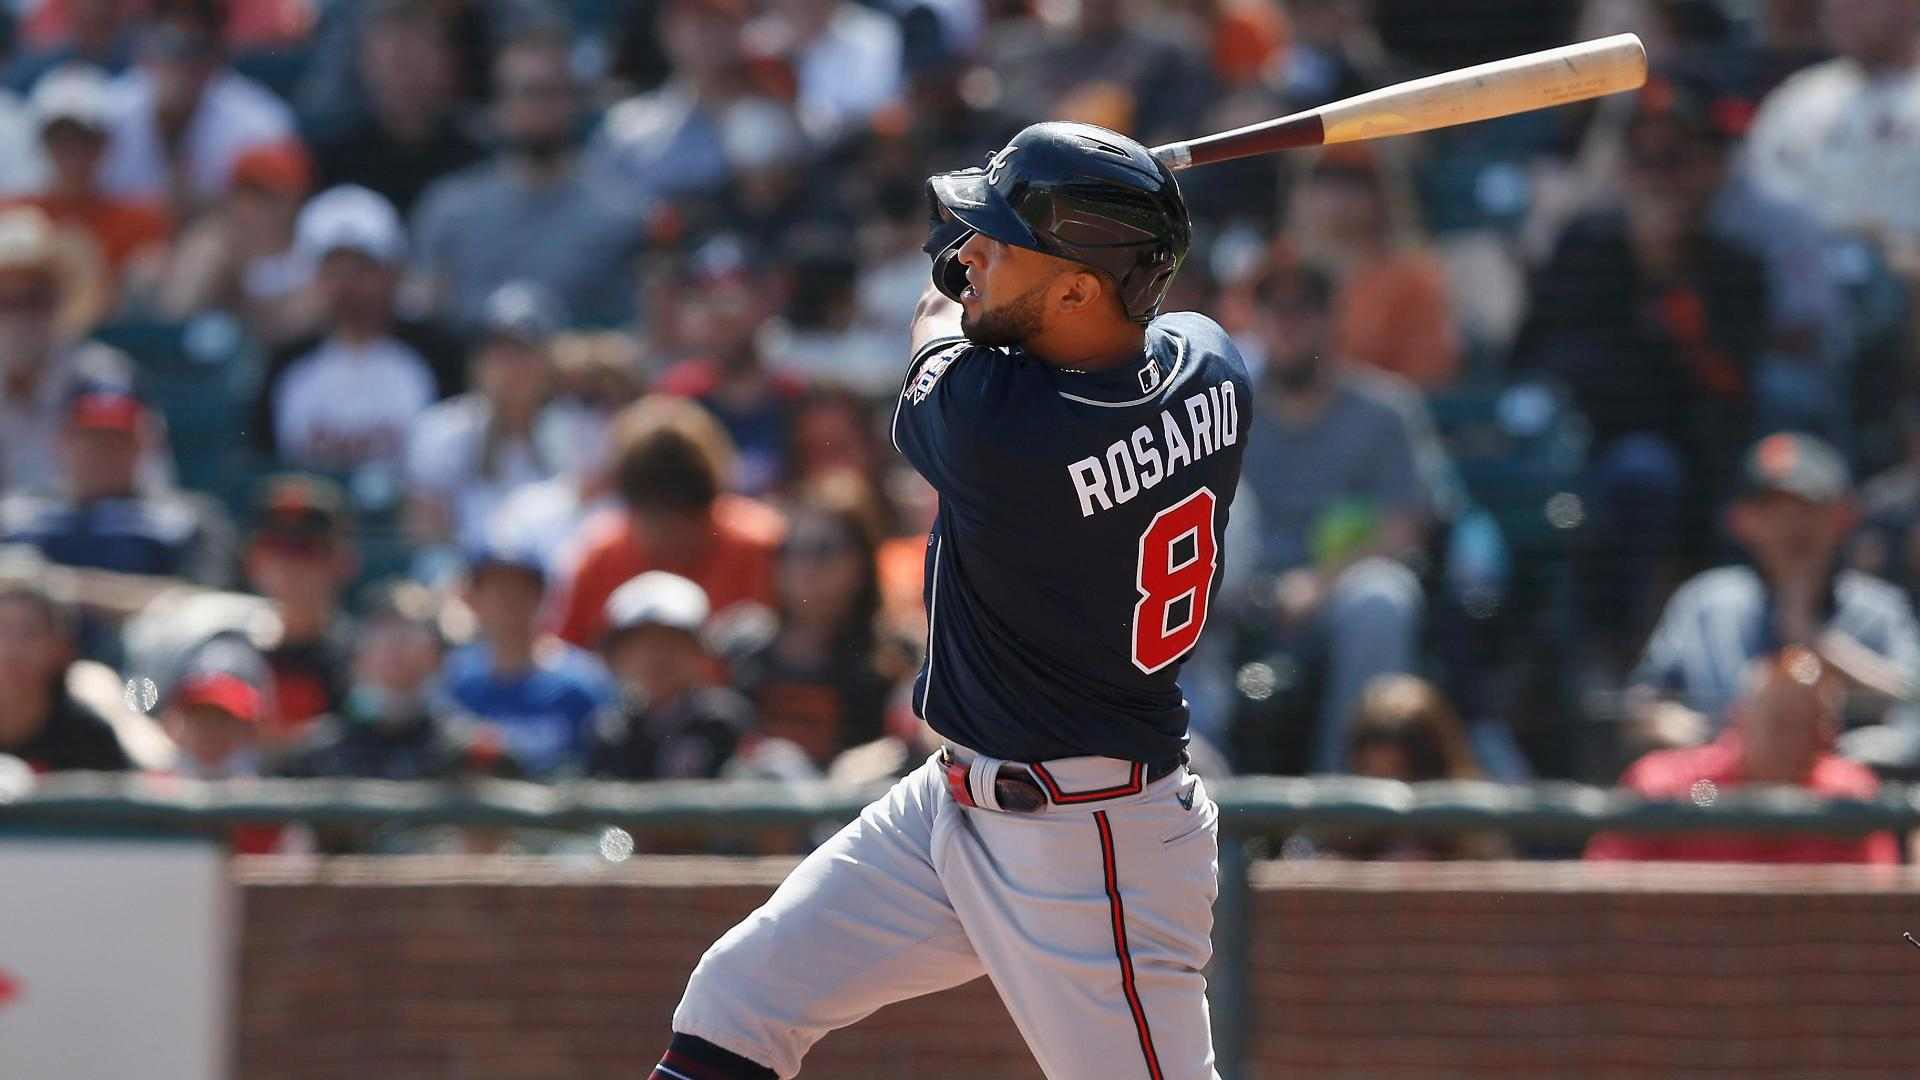 Eddie Rosario hits for the cycle